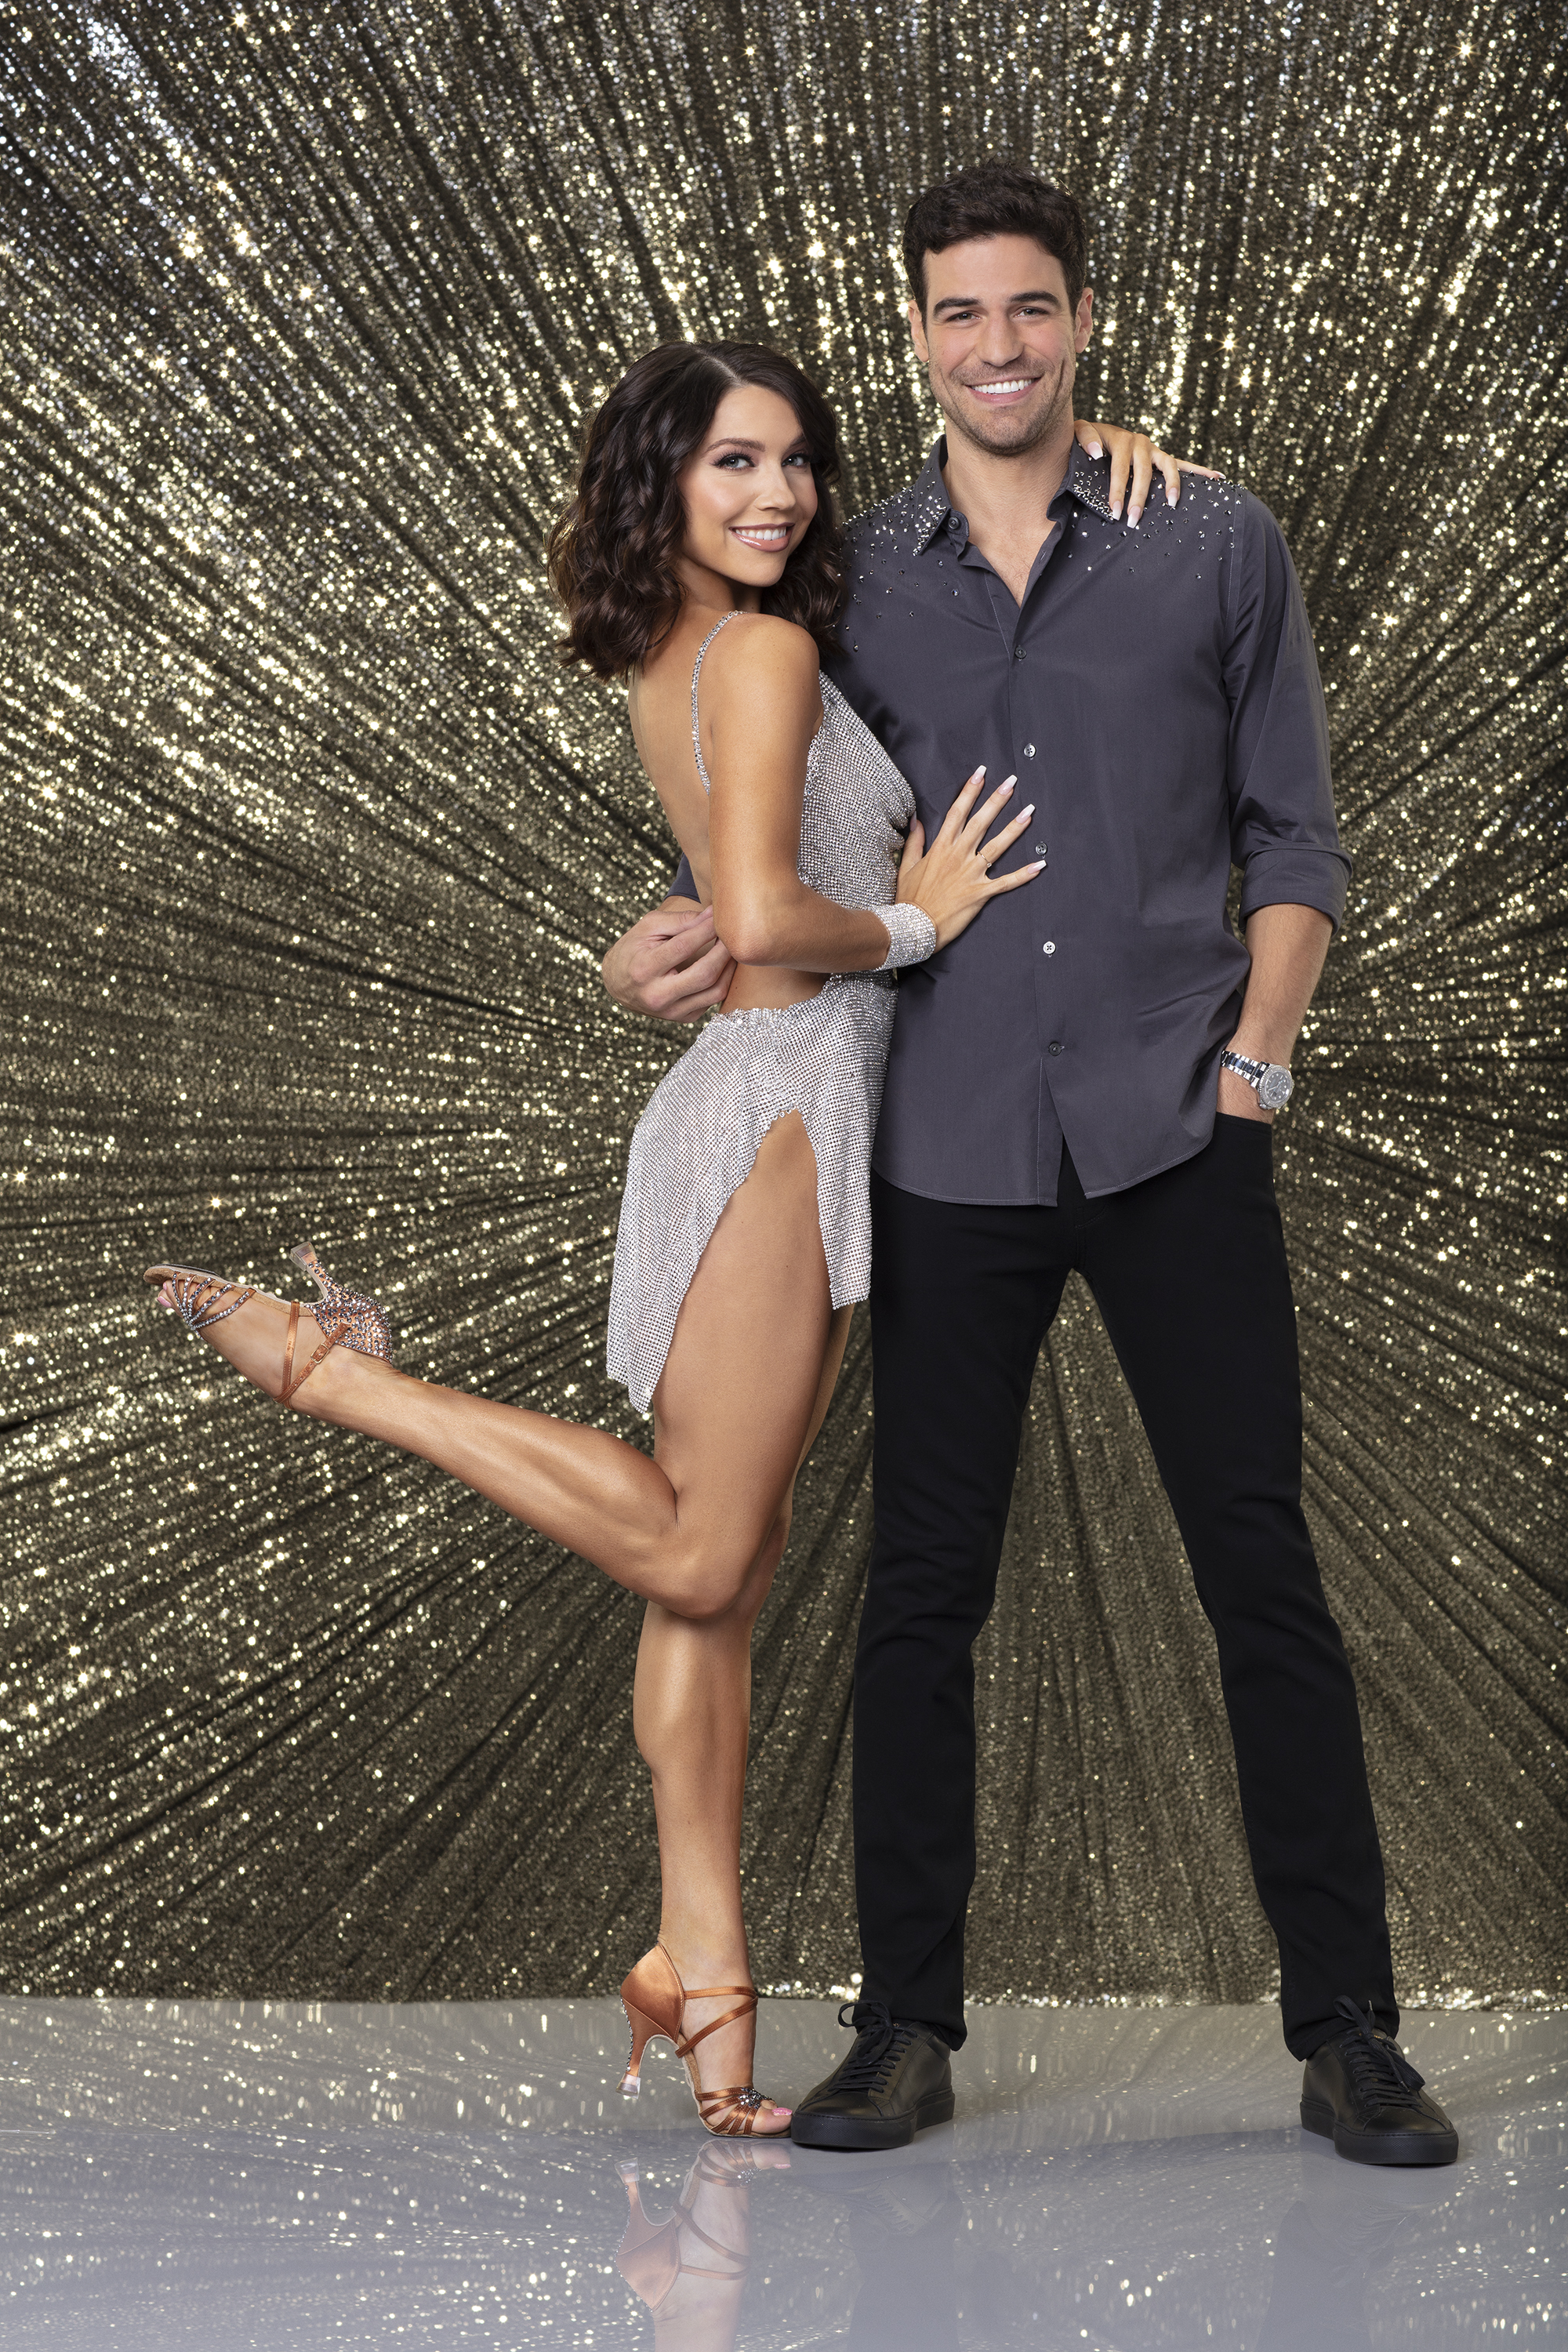 Is anyone dating on dancing with the stars 2019